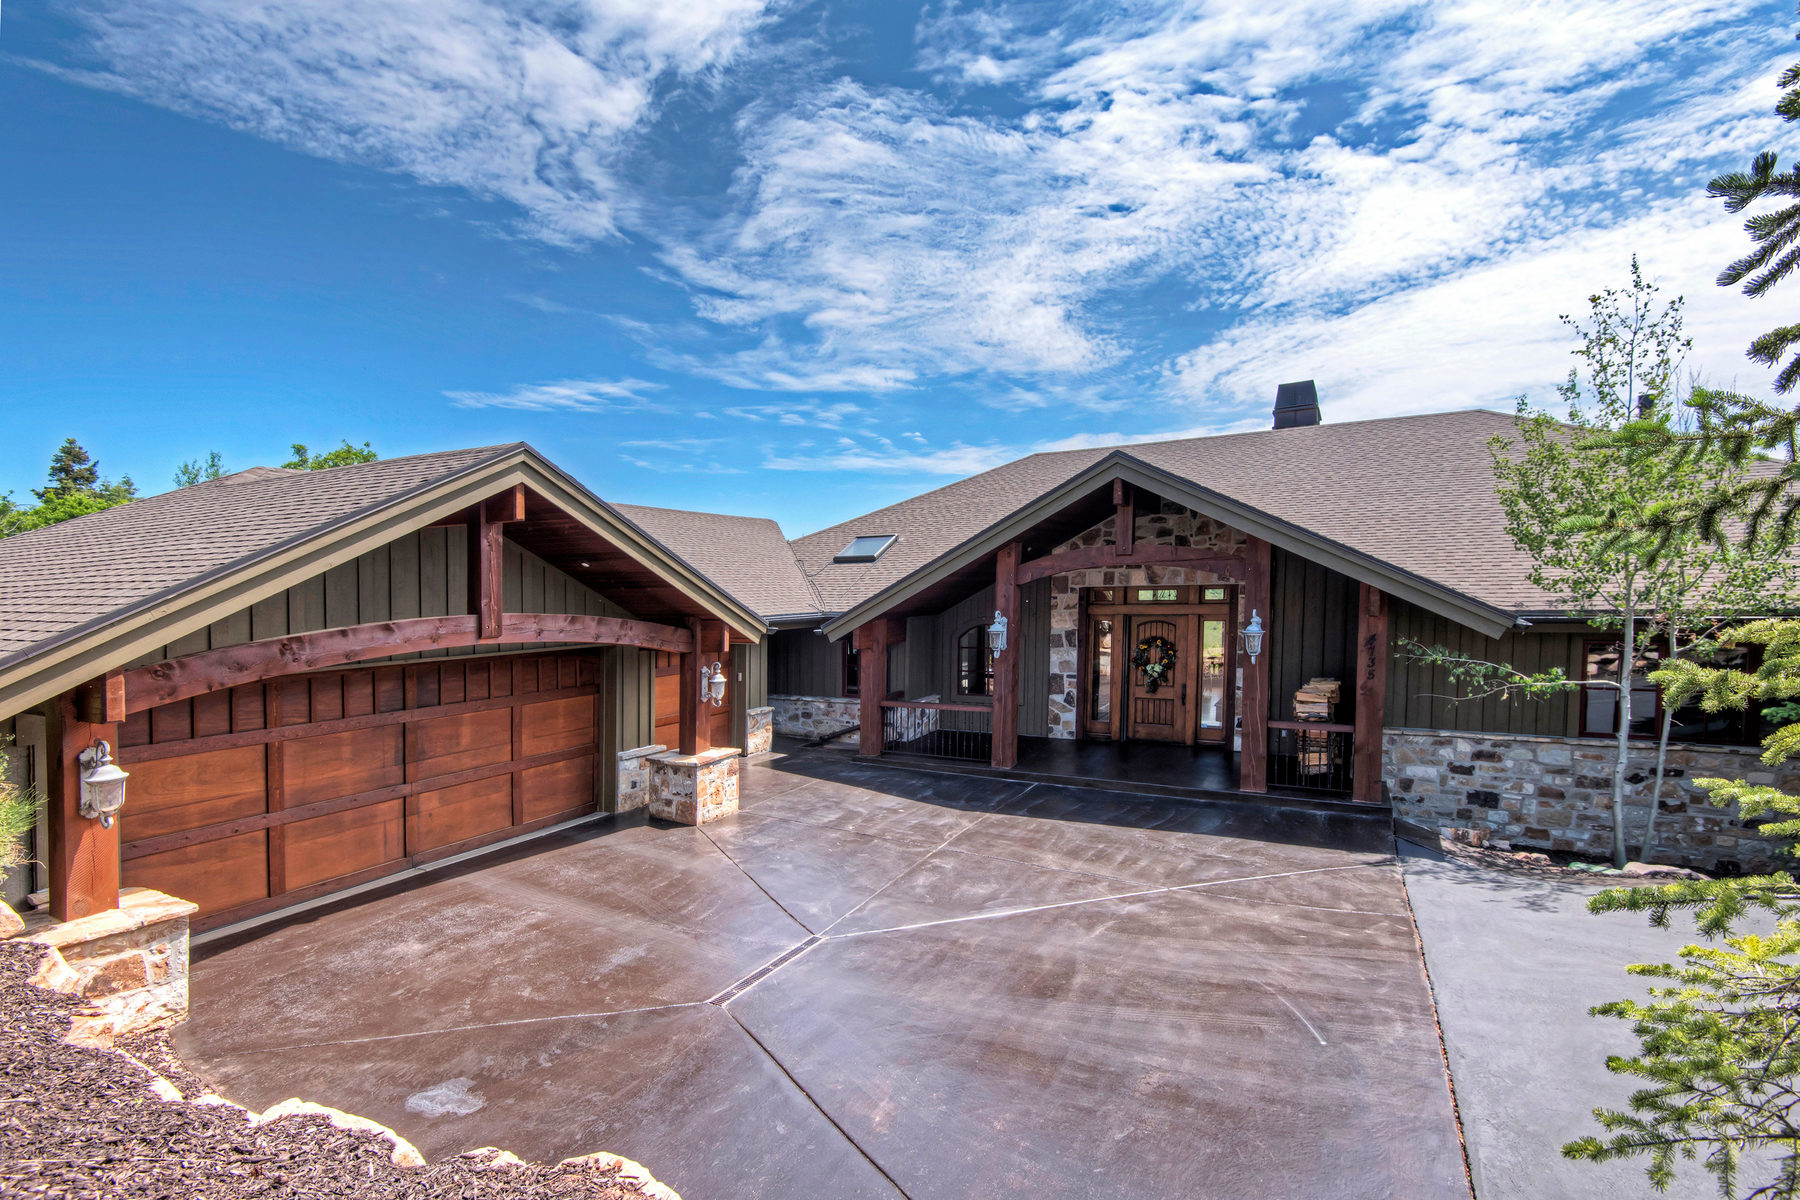 Single Family Home for Sale at Beautiful Home with Expansive Views 9254 N Canyon Rd Park City, Utah, 84098 United States